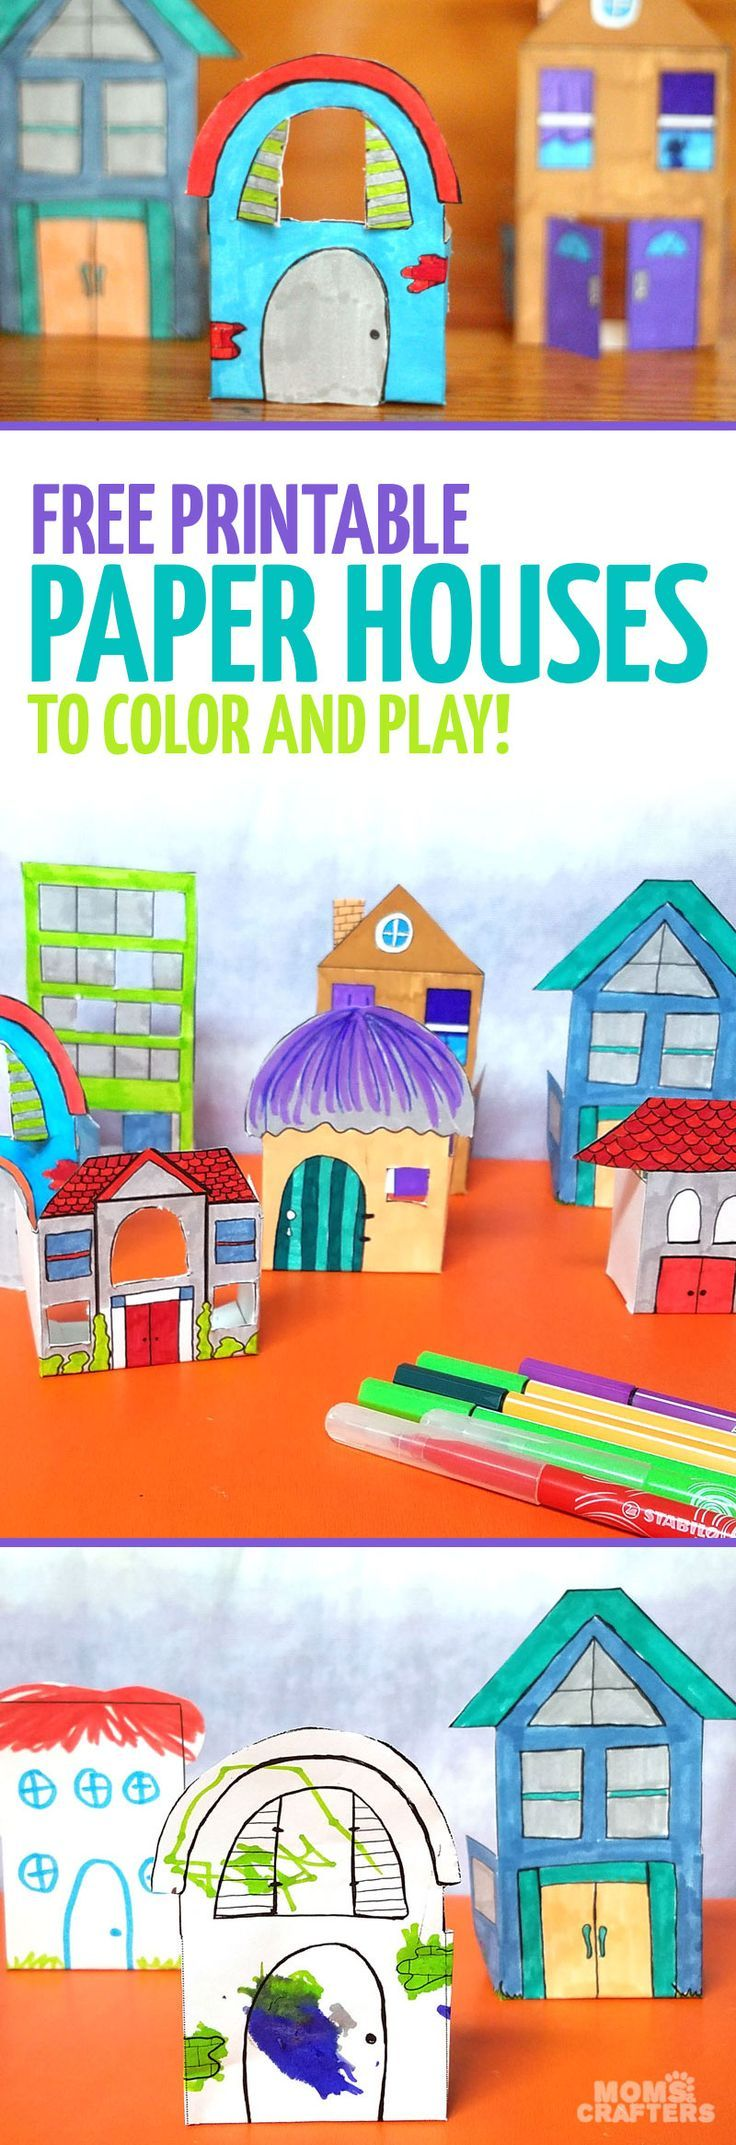 Craft sets for kids - Print And Craft Some Paper Houses